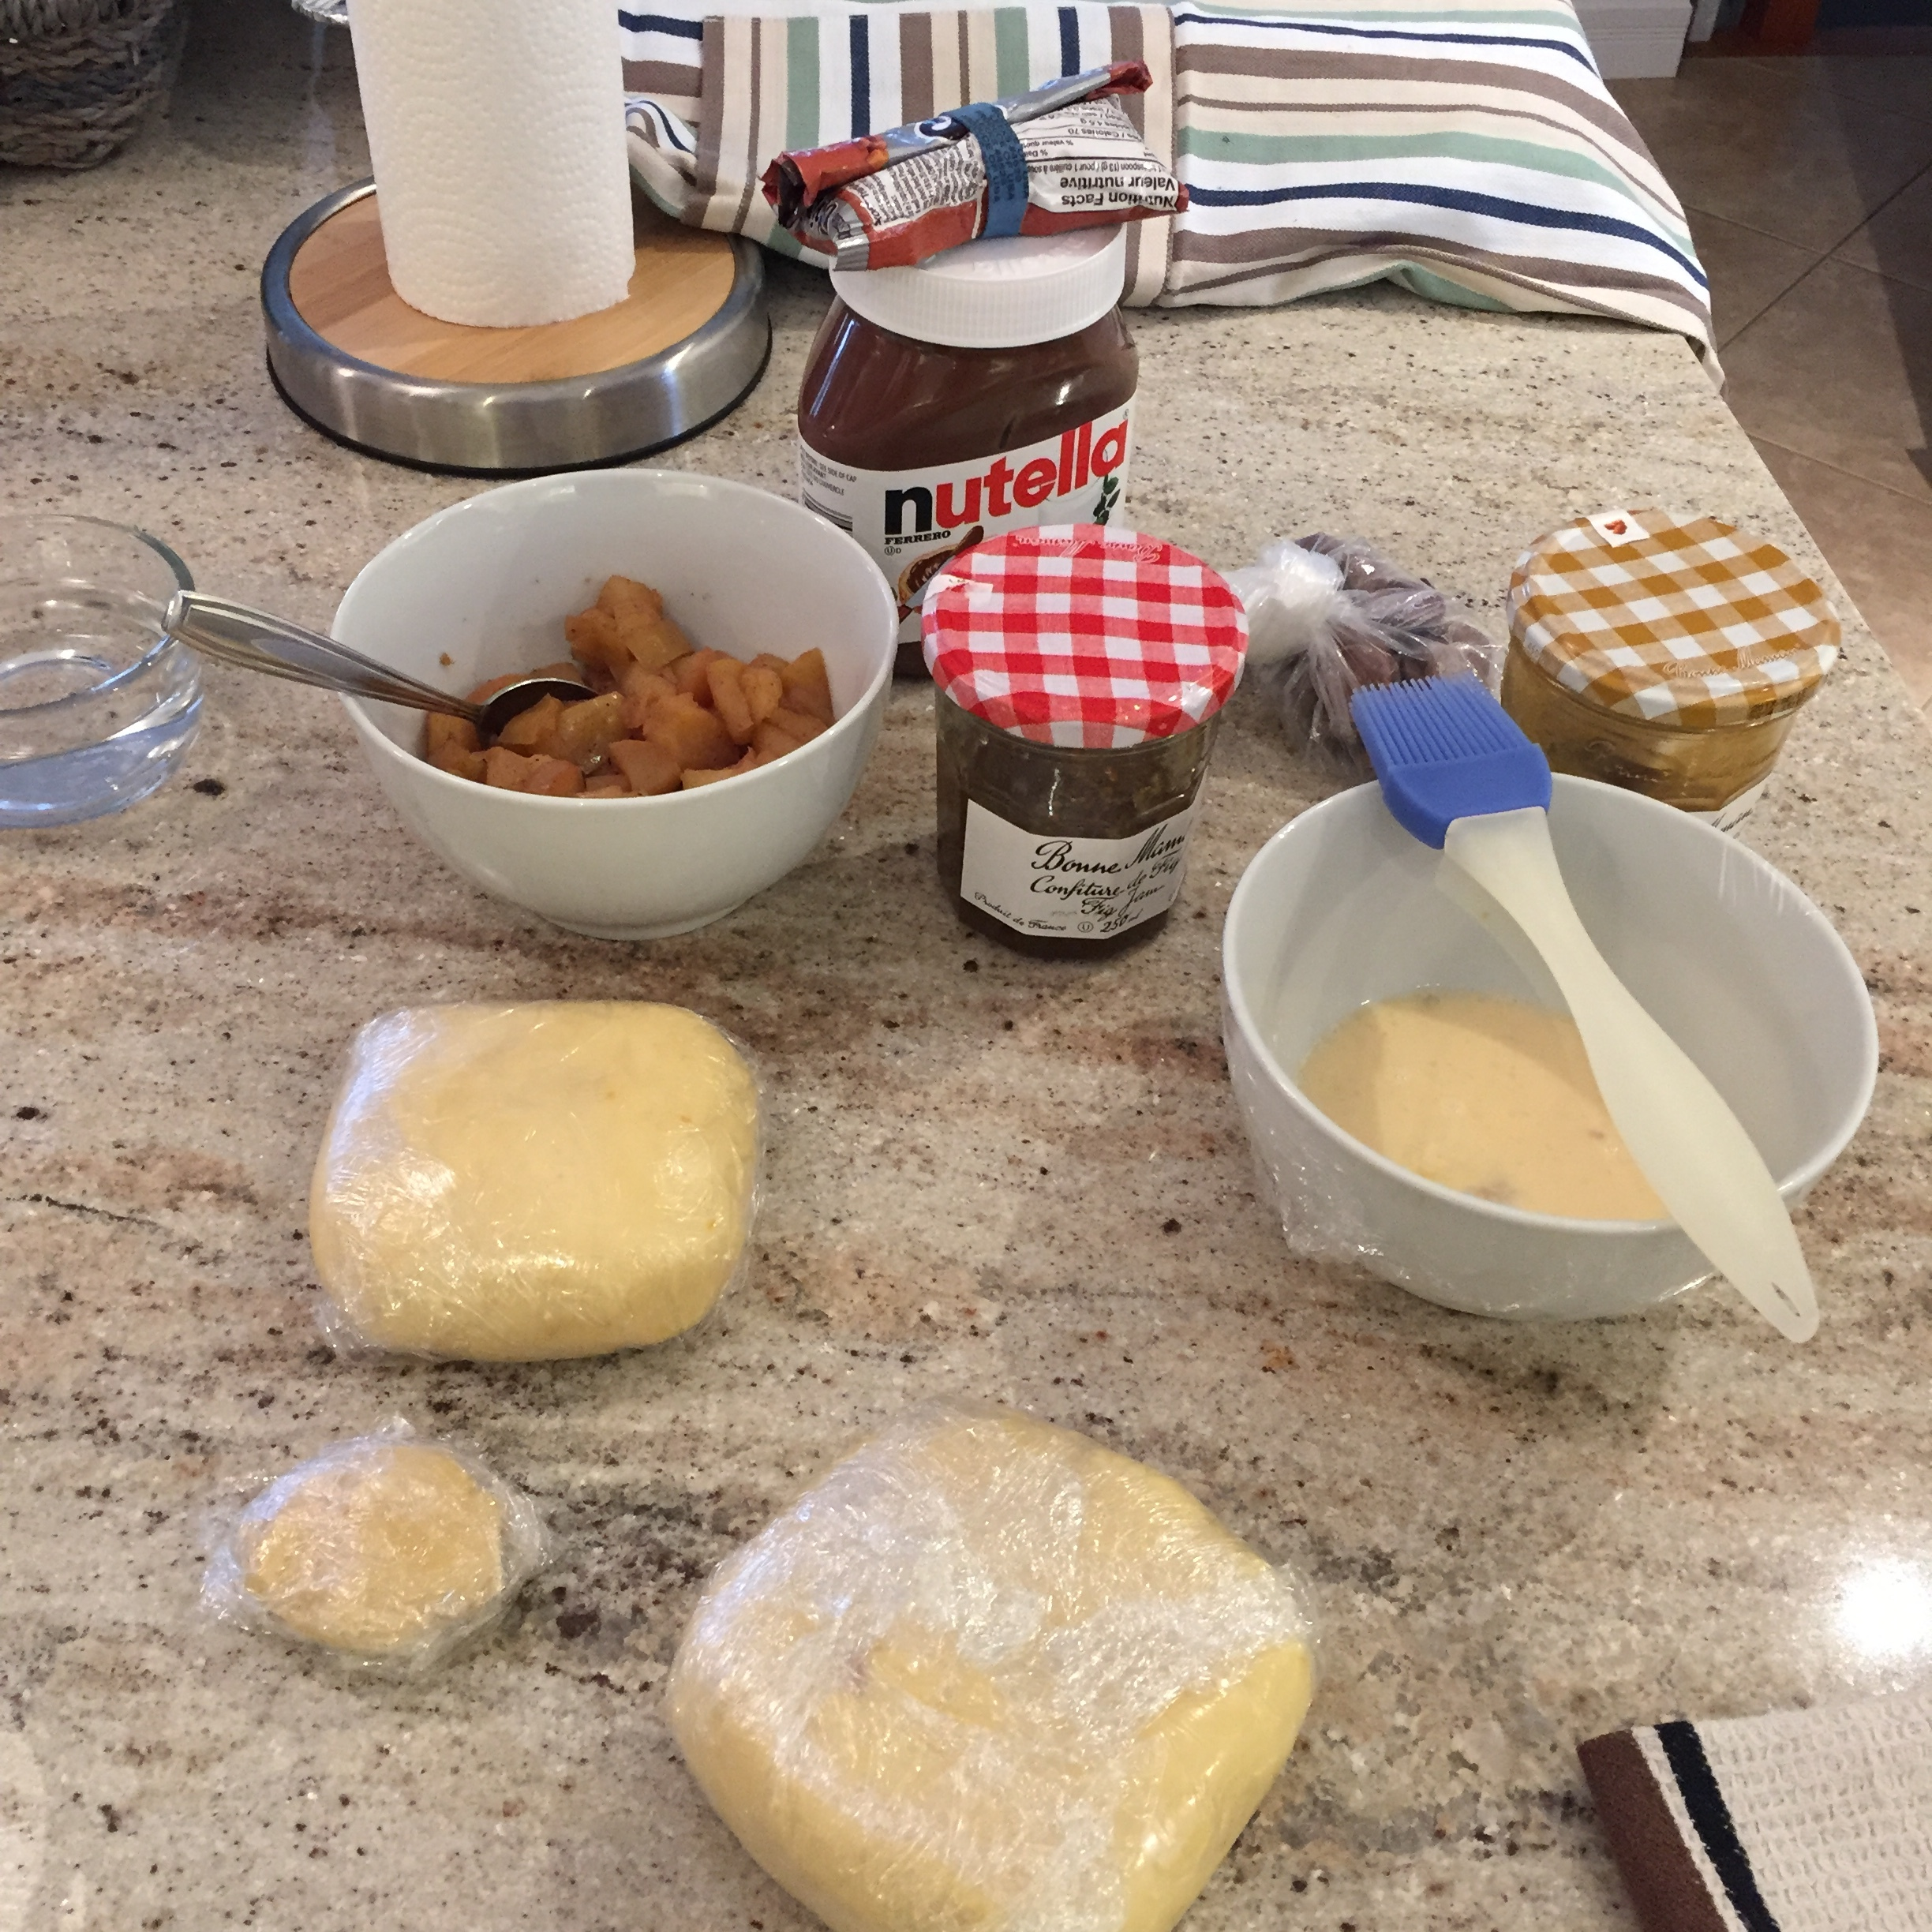 Ingredients for the Hamantaschen: dough and fillings at the ready.